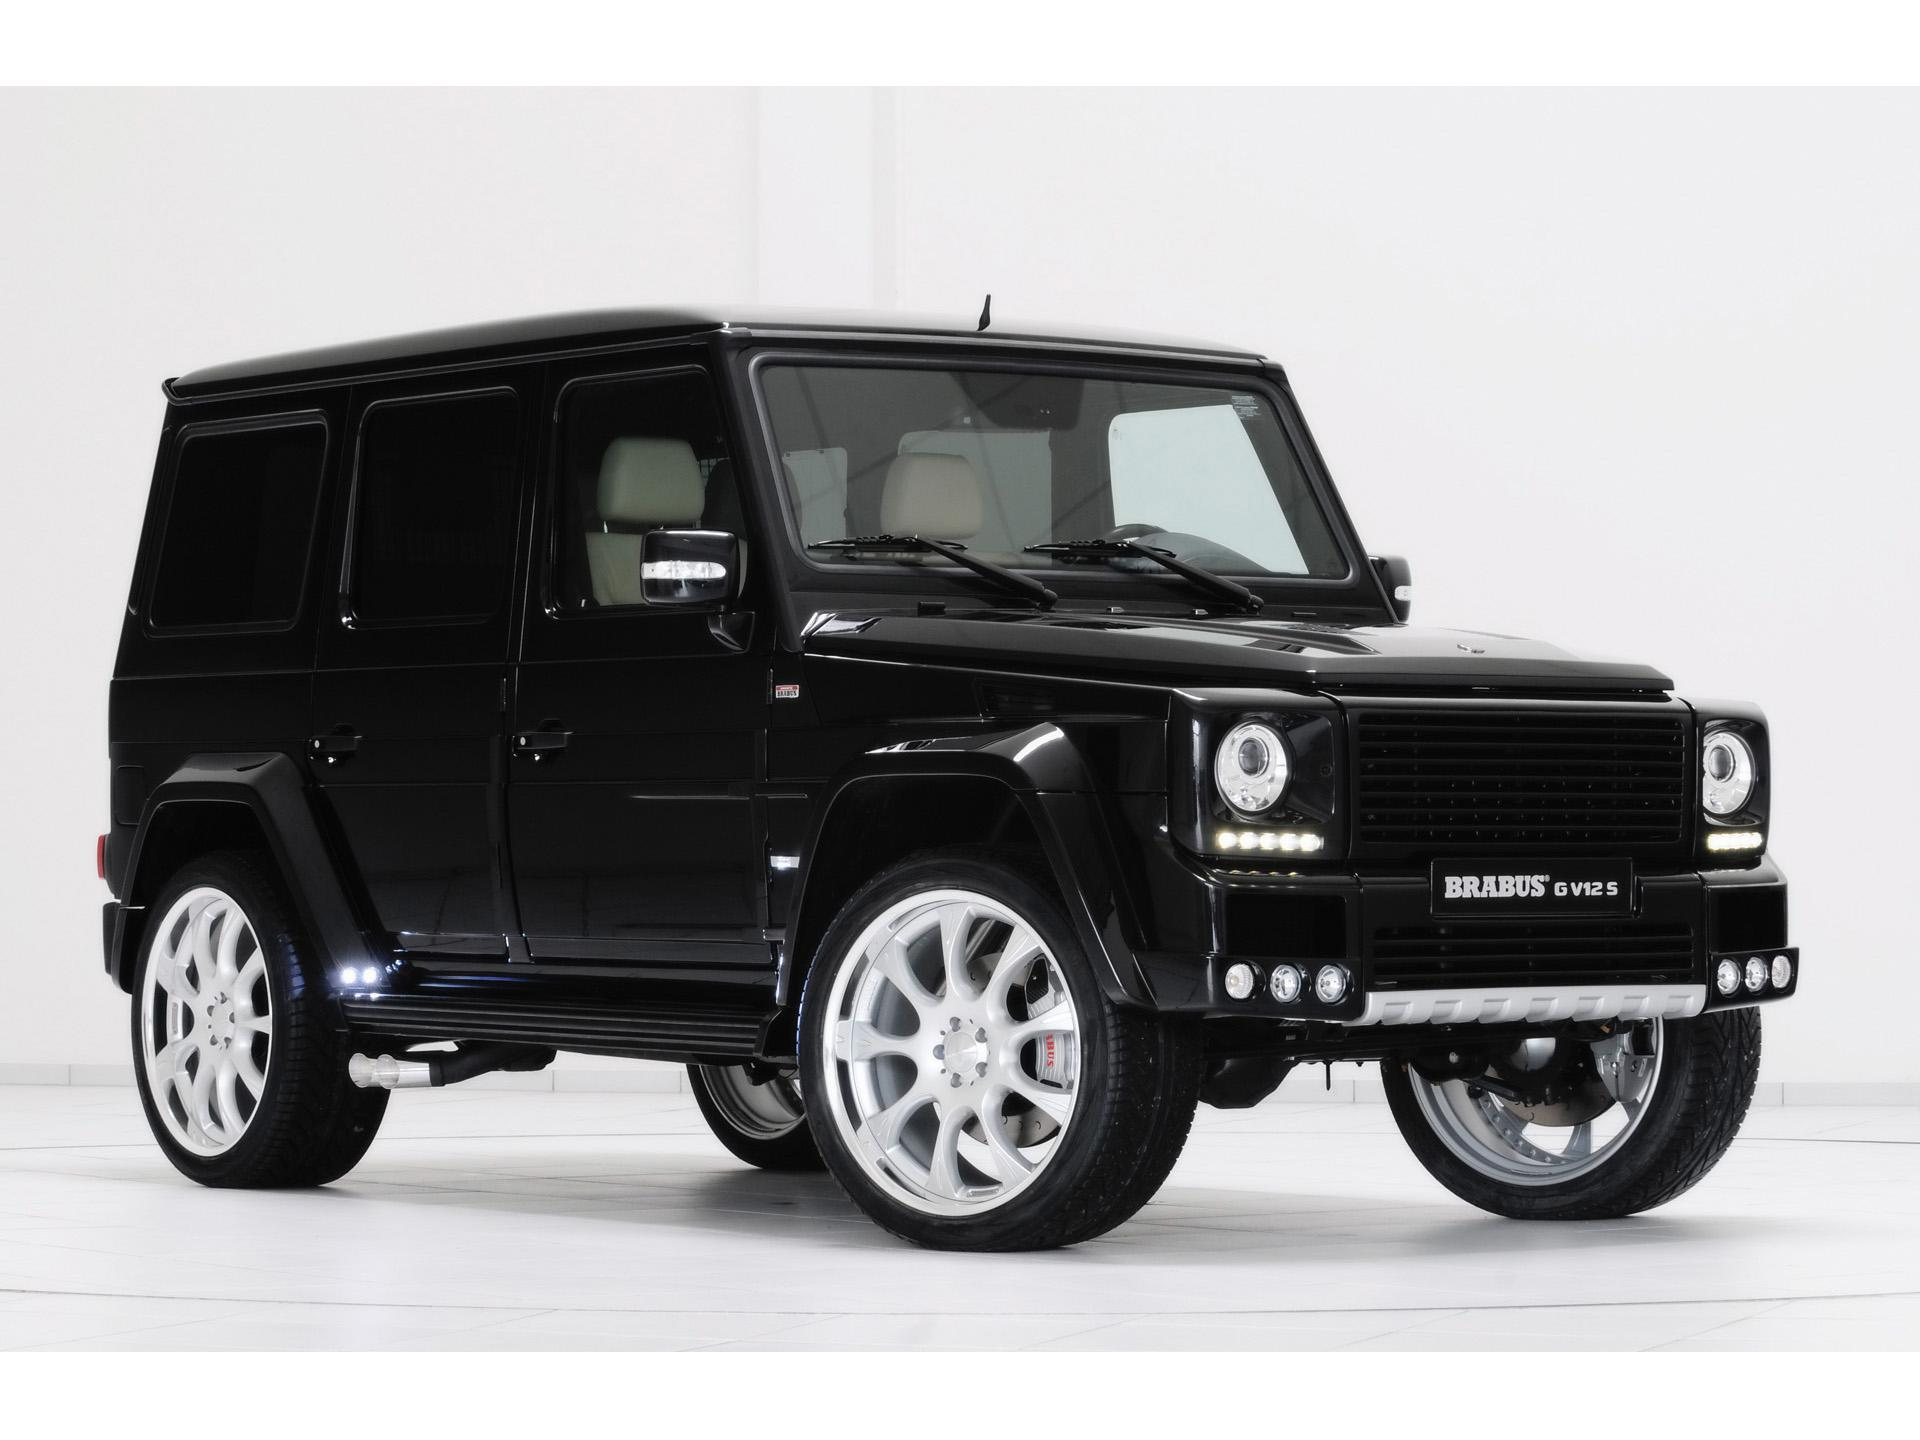 2010 brabus g class v12 s news and information. Black Bedroom Furniture Sets. Home Design Ideas